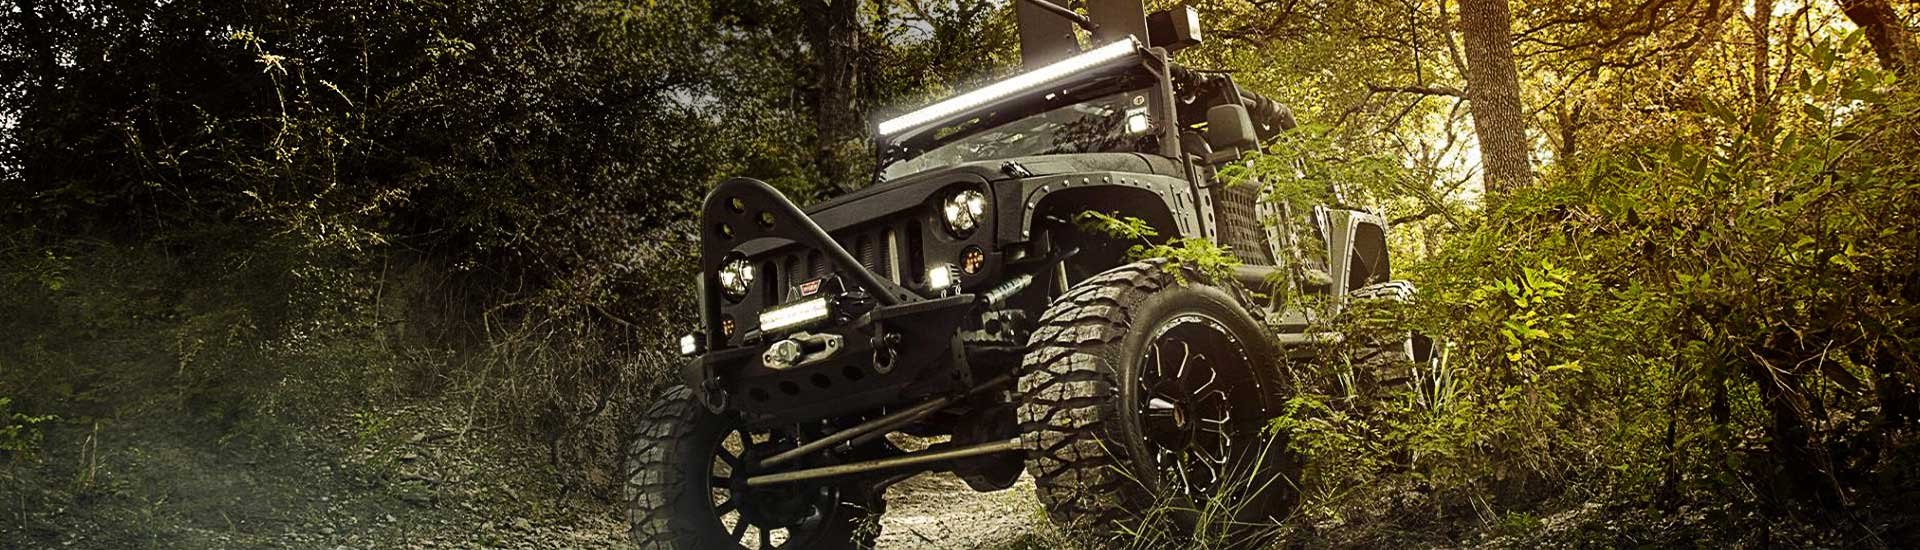 aries unlimited wrangler accessories jeep vimeo on